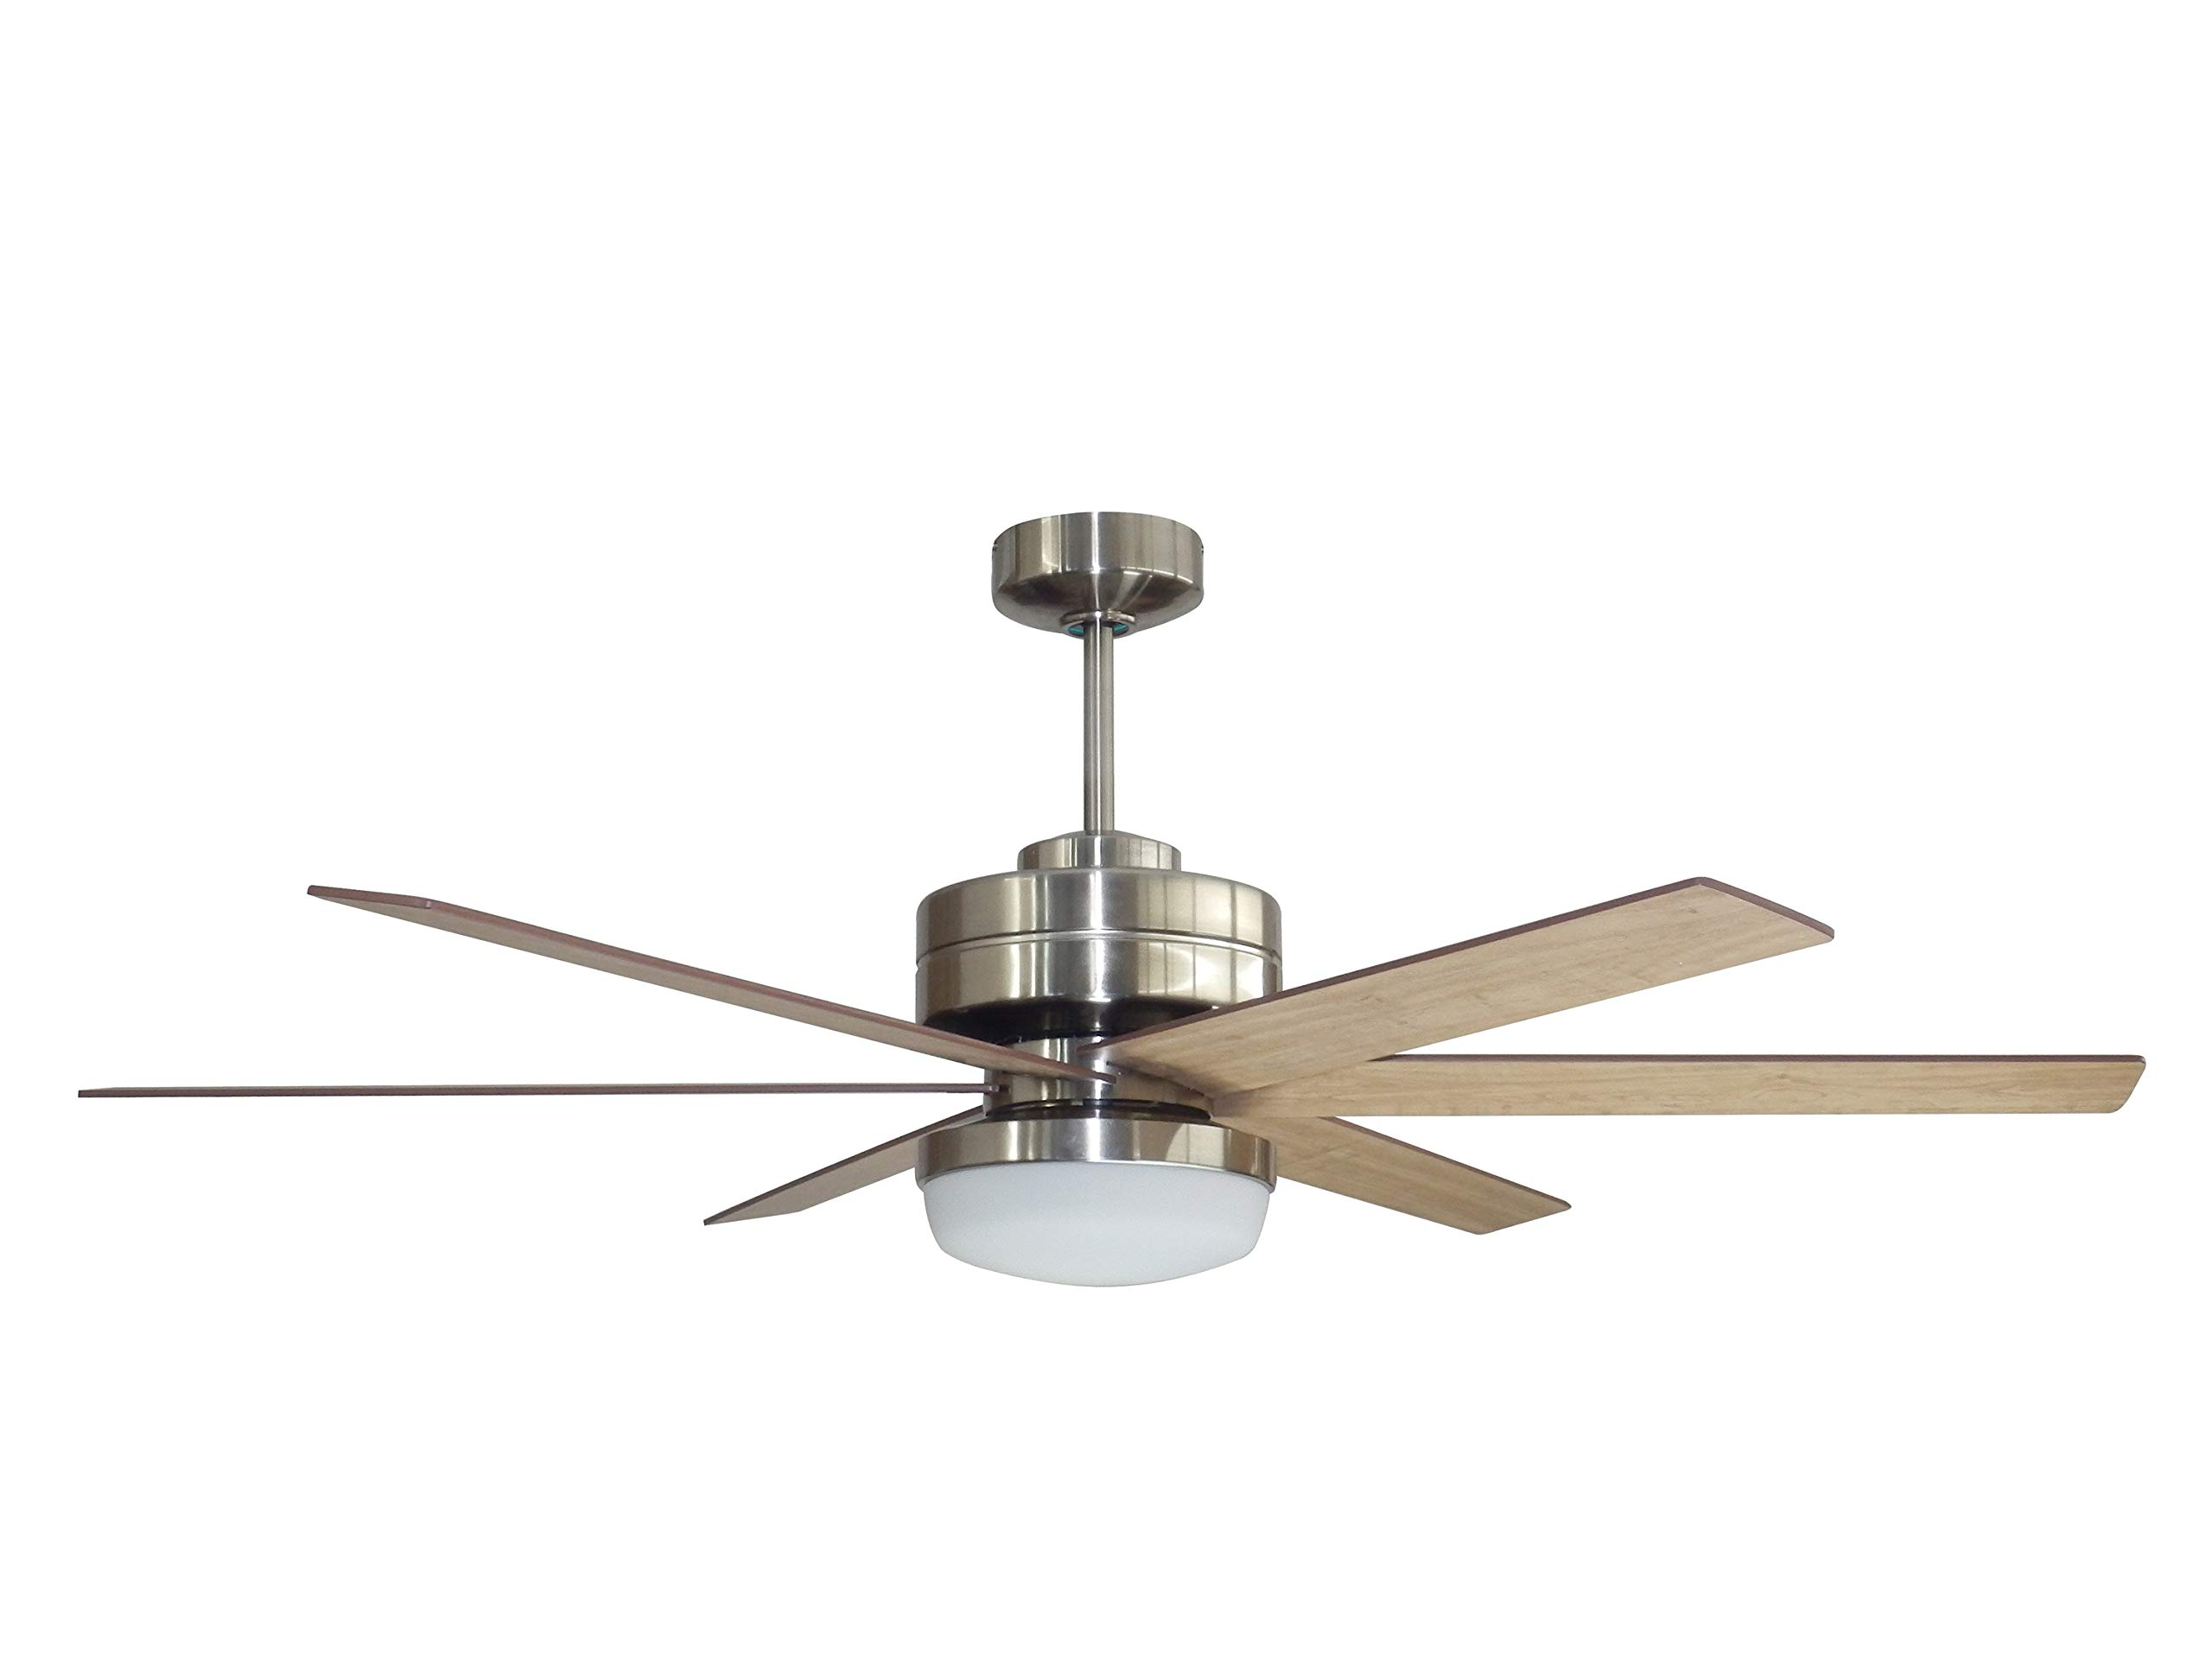 "Litex Industries RS54BNK6LR Litex Rossman Modern 52""Ceiling Fan Brushed Nickel Finish with 6 Glazed Cherry/Driftwood Reversible Blades, Remote Control, UL Rated"